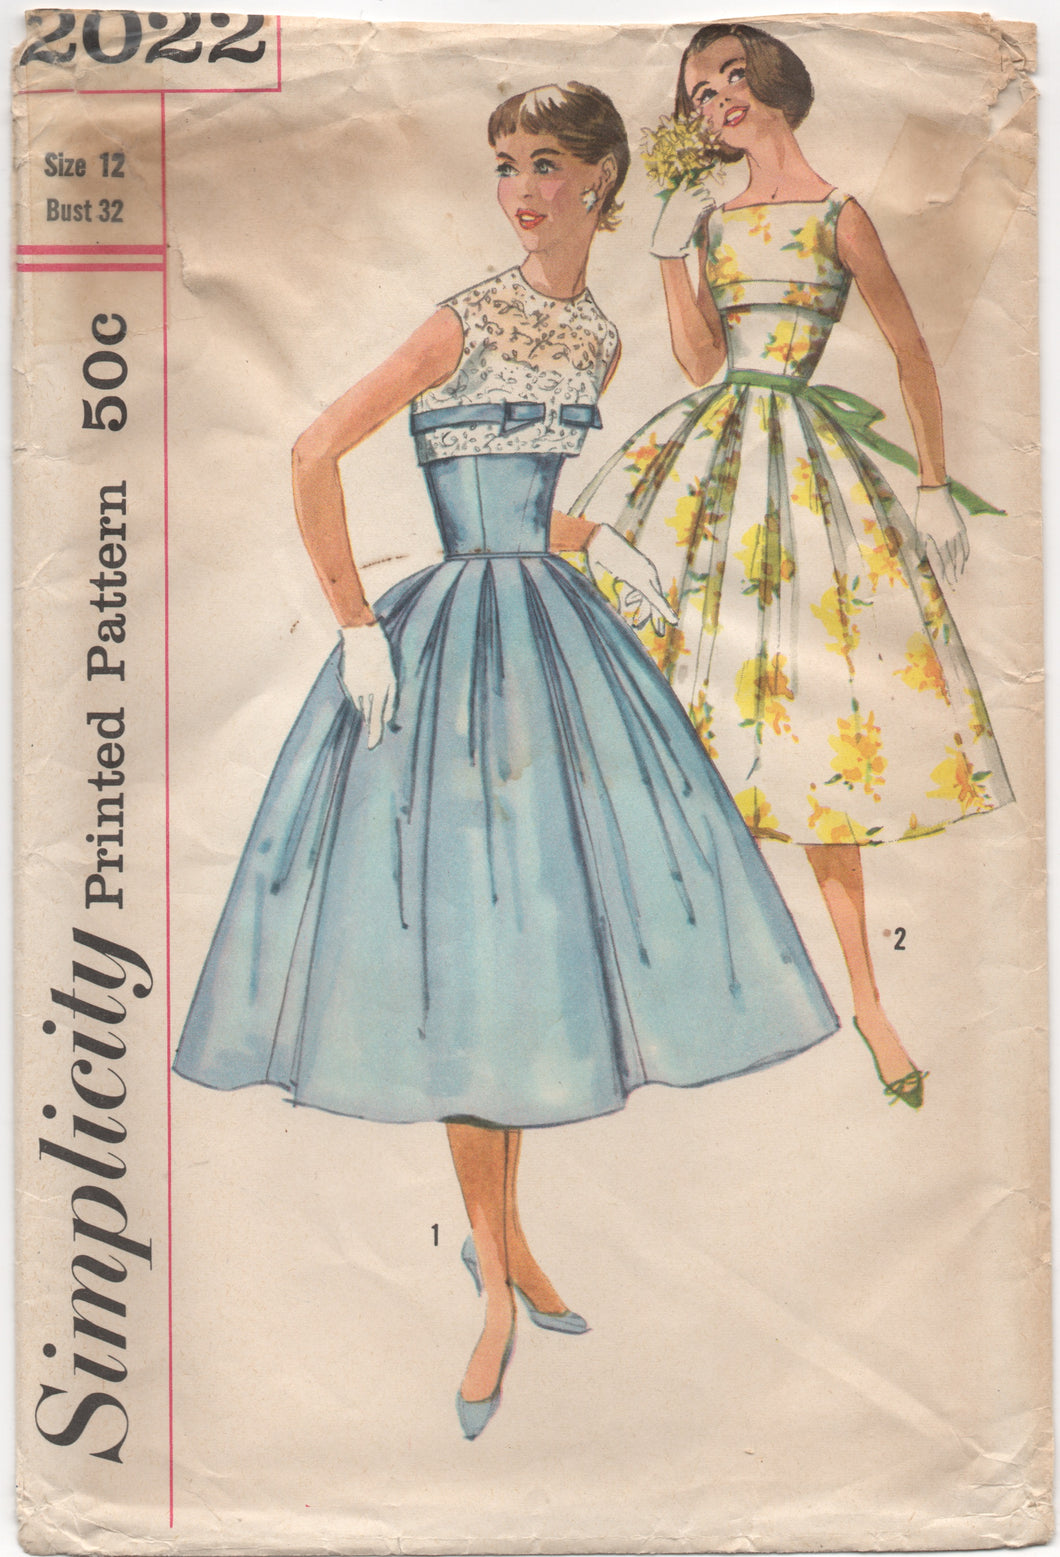 1950's Simplicity One Piece Fit & Flare Dress with Fitted Waist with Mock Bolero - Bust 32